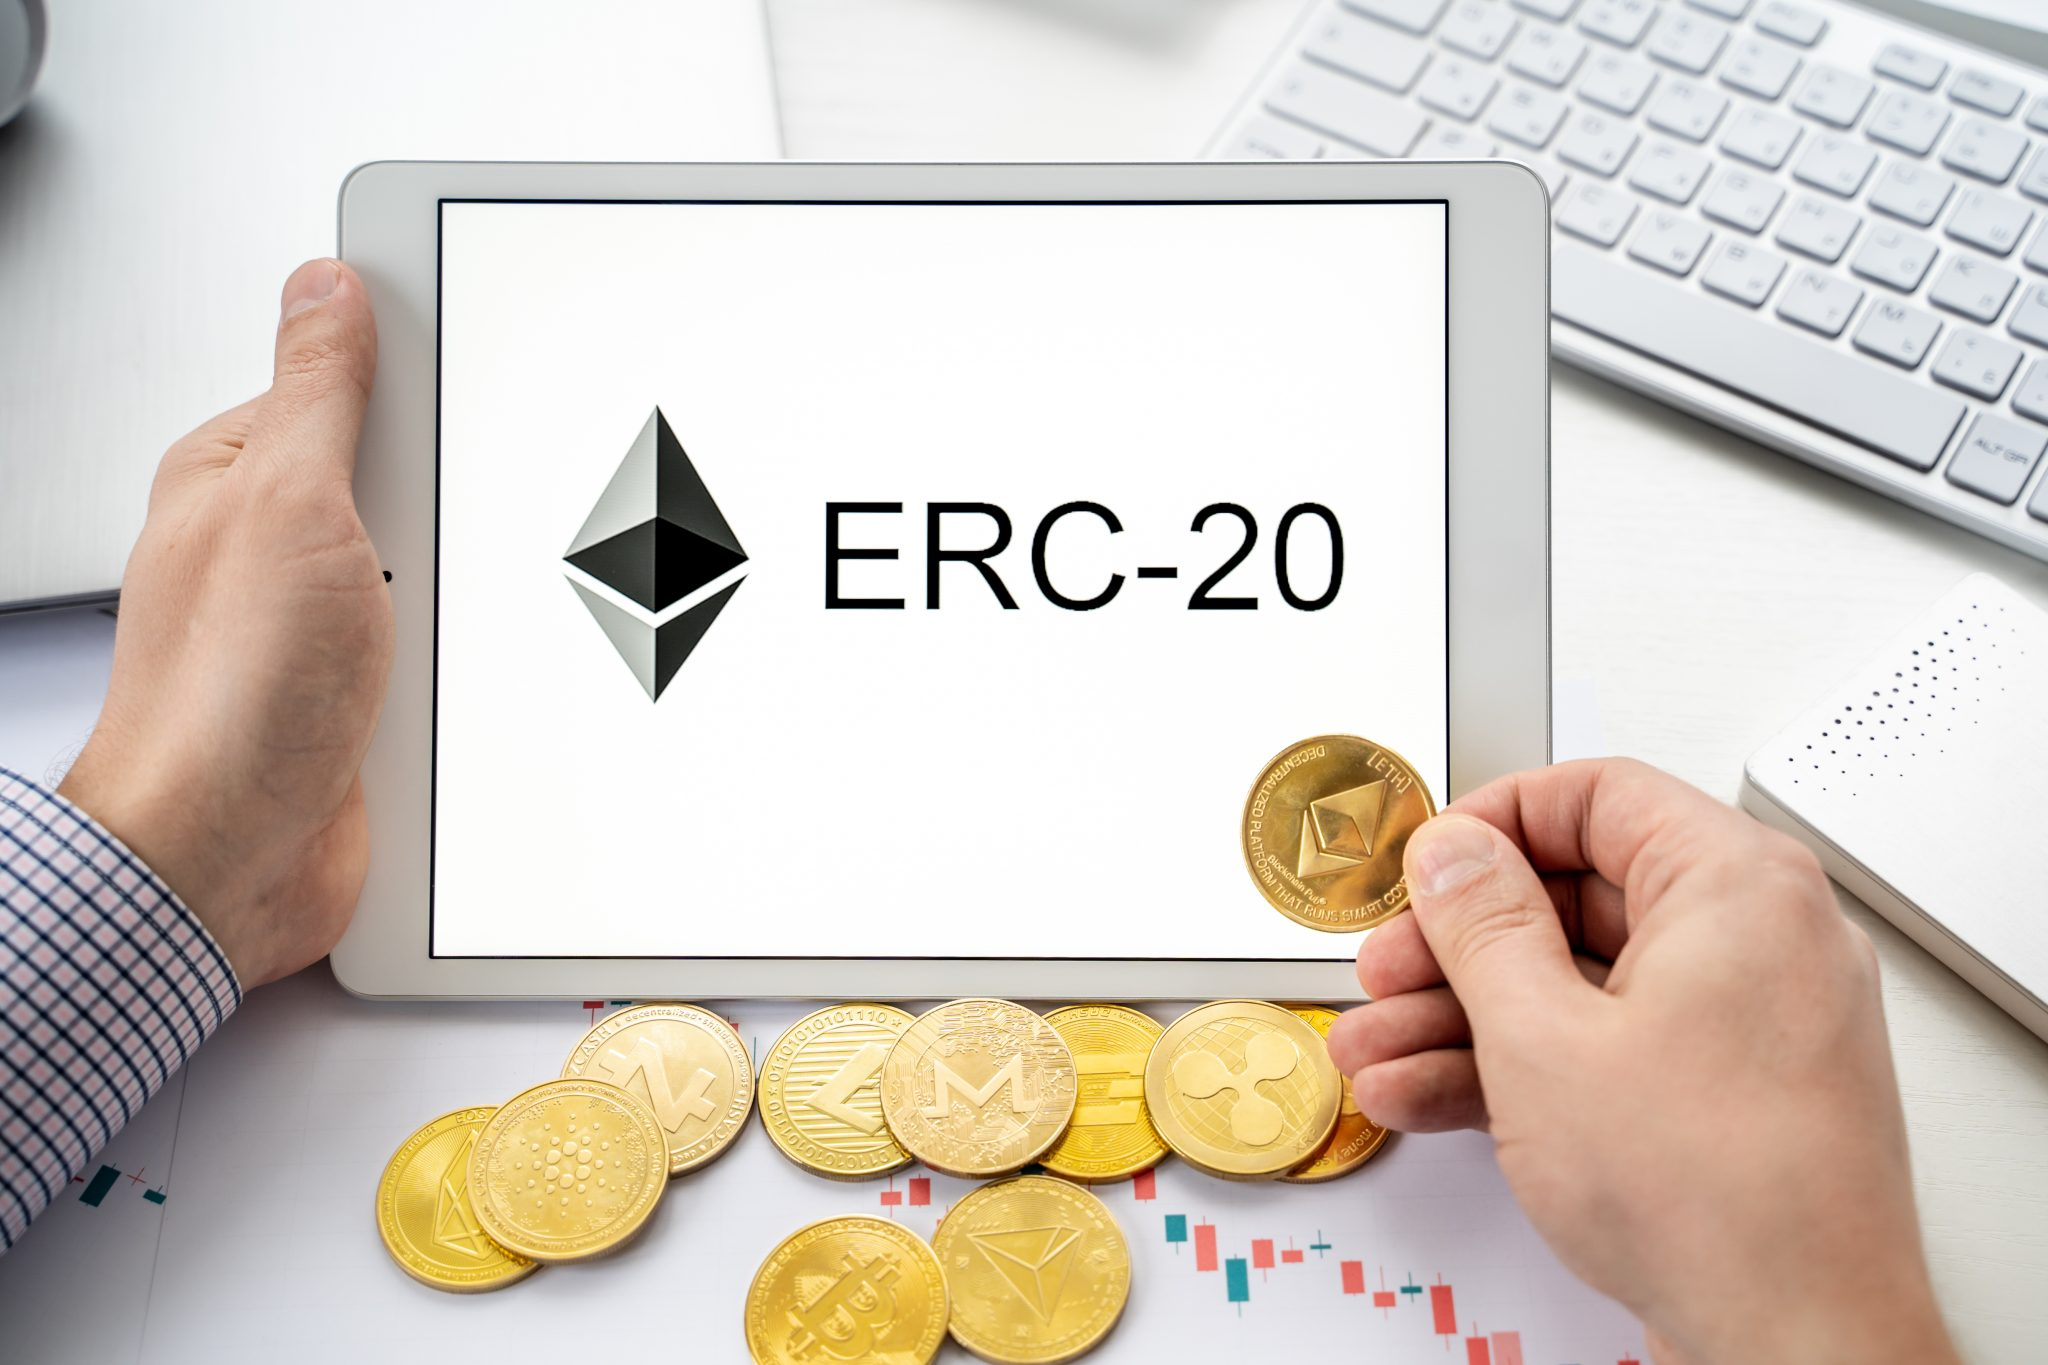 Russia Moscow 06.05.2021.Businessman holding tablet with logo of ERC-20 official protocol of Ethereum ETH network. Standard for creating tokens on Ethereum blockchain.